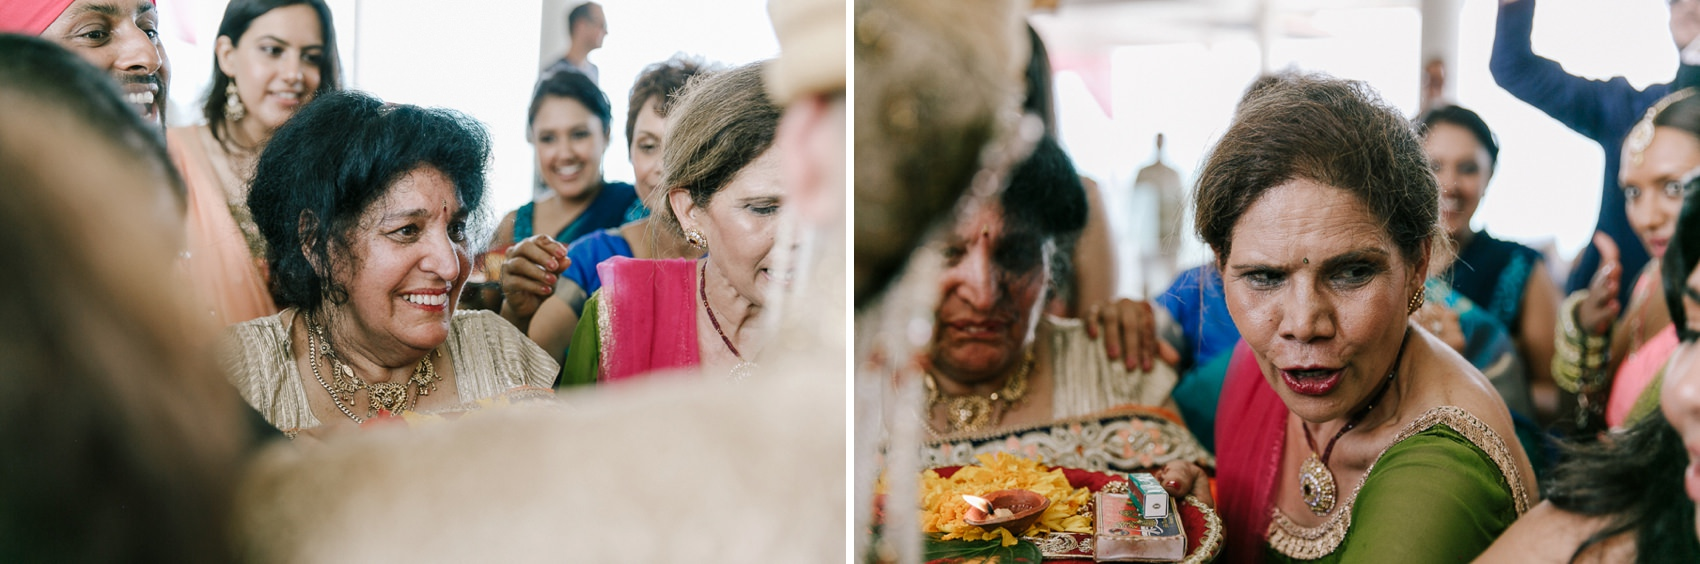 Indian-Wedding-Photography-Maala-Rohan_0192